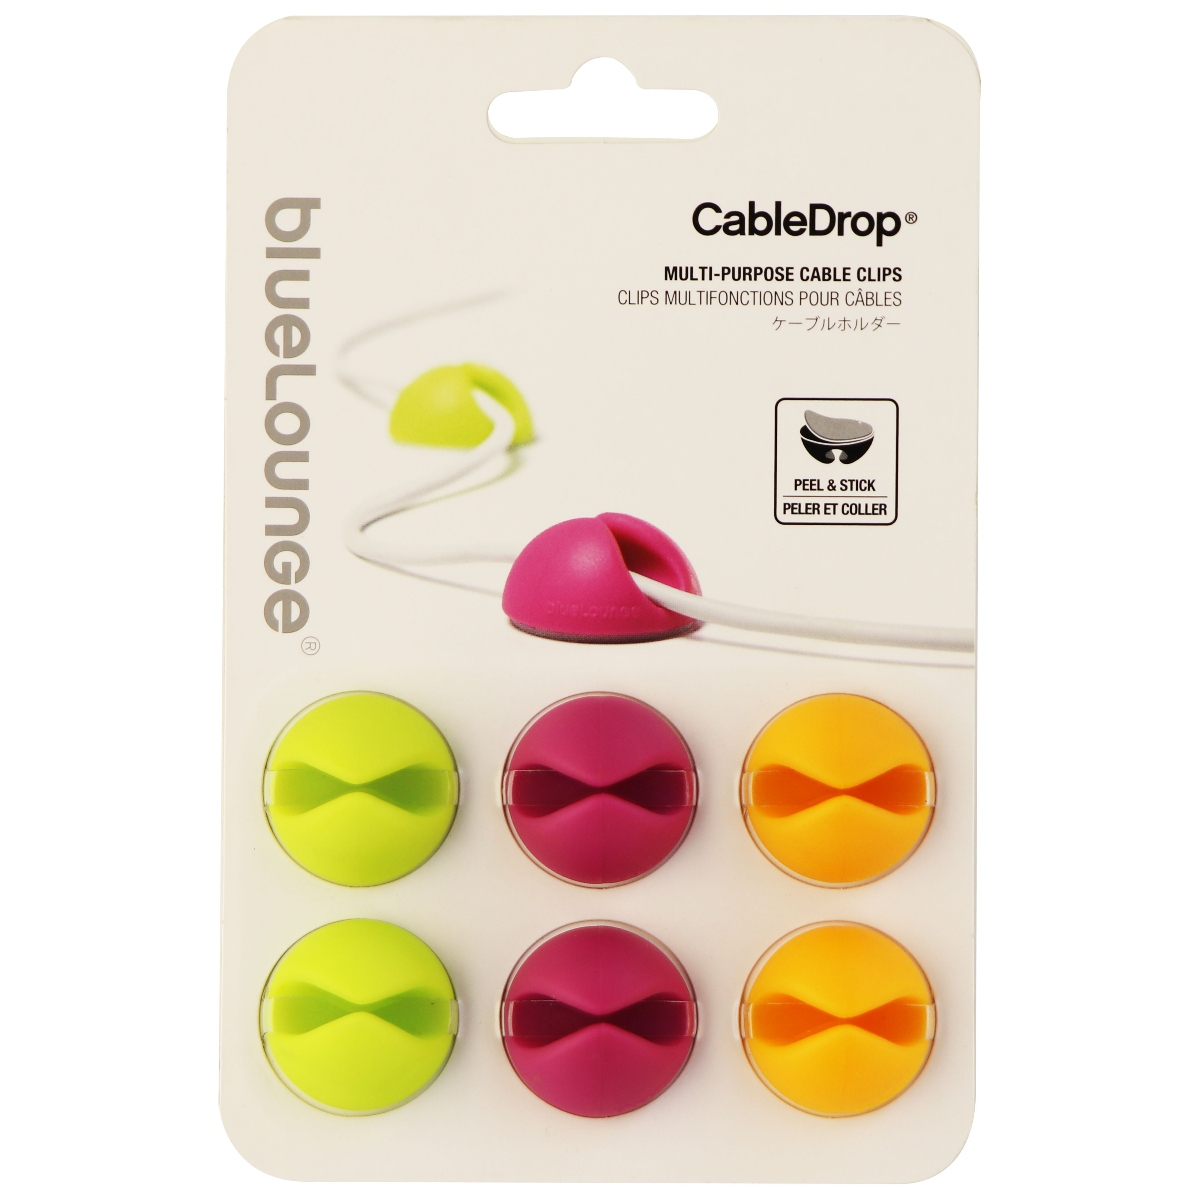 Bluelounge Design CableDrop Cable Management System - Multi Colored 6 Pack